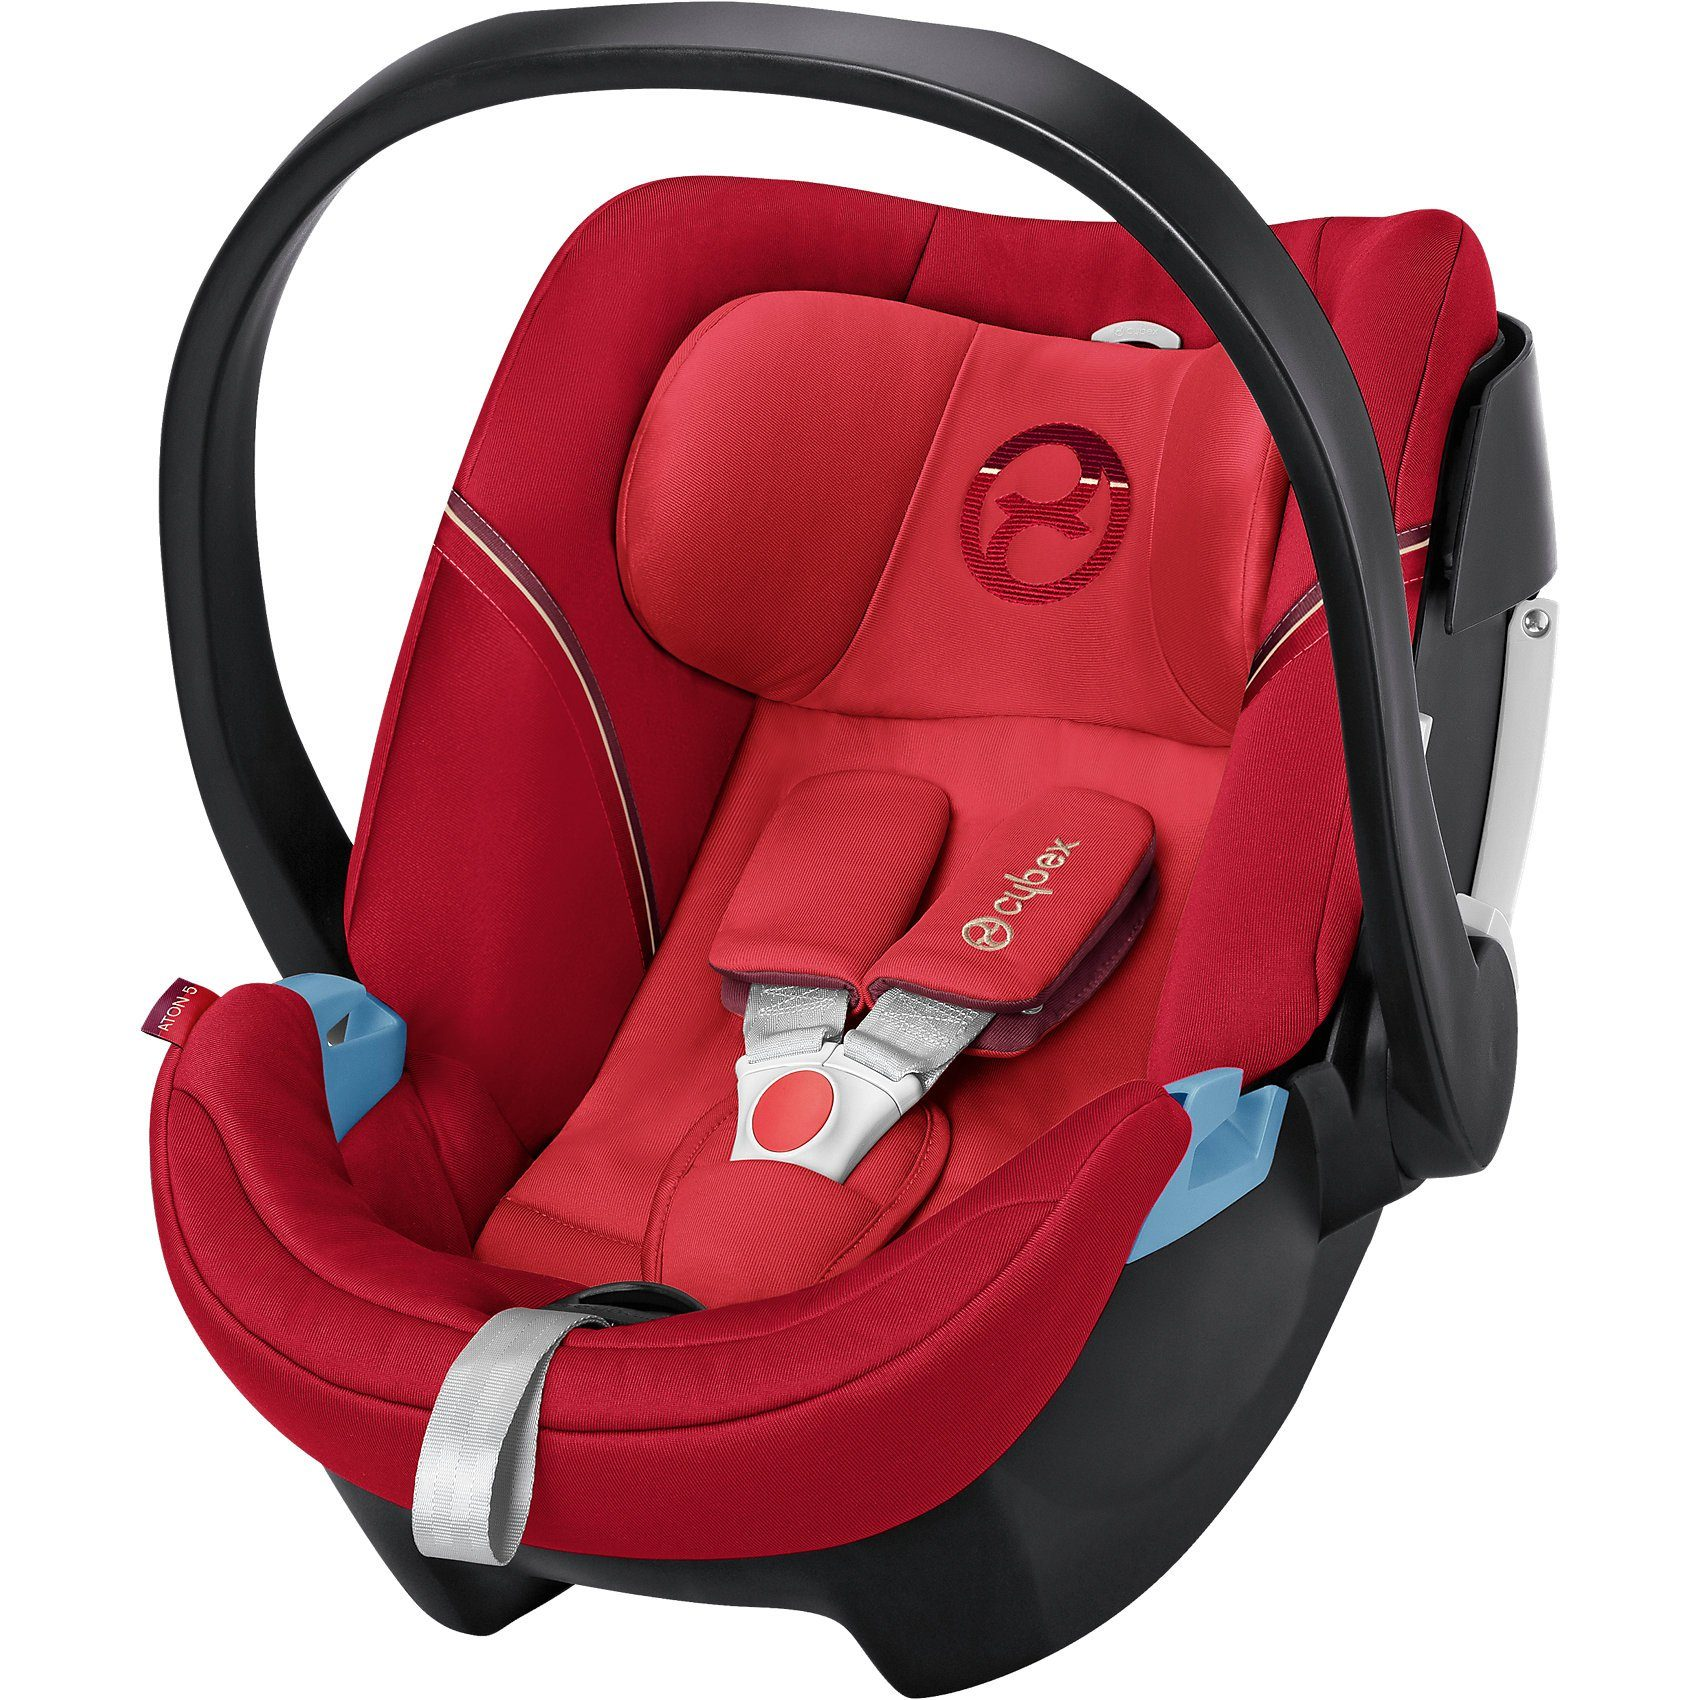 Cybex Babyschale Aton 5, Gold-Line, Infra Red-Red, 2017